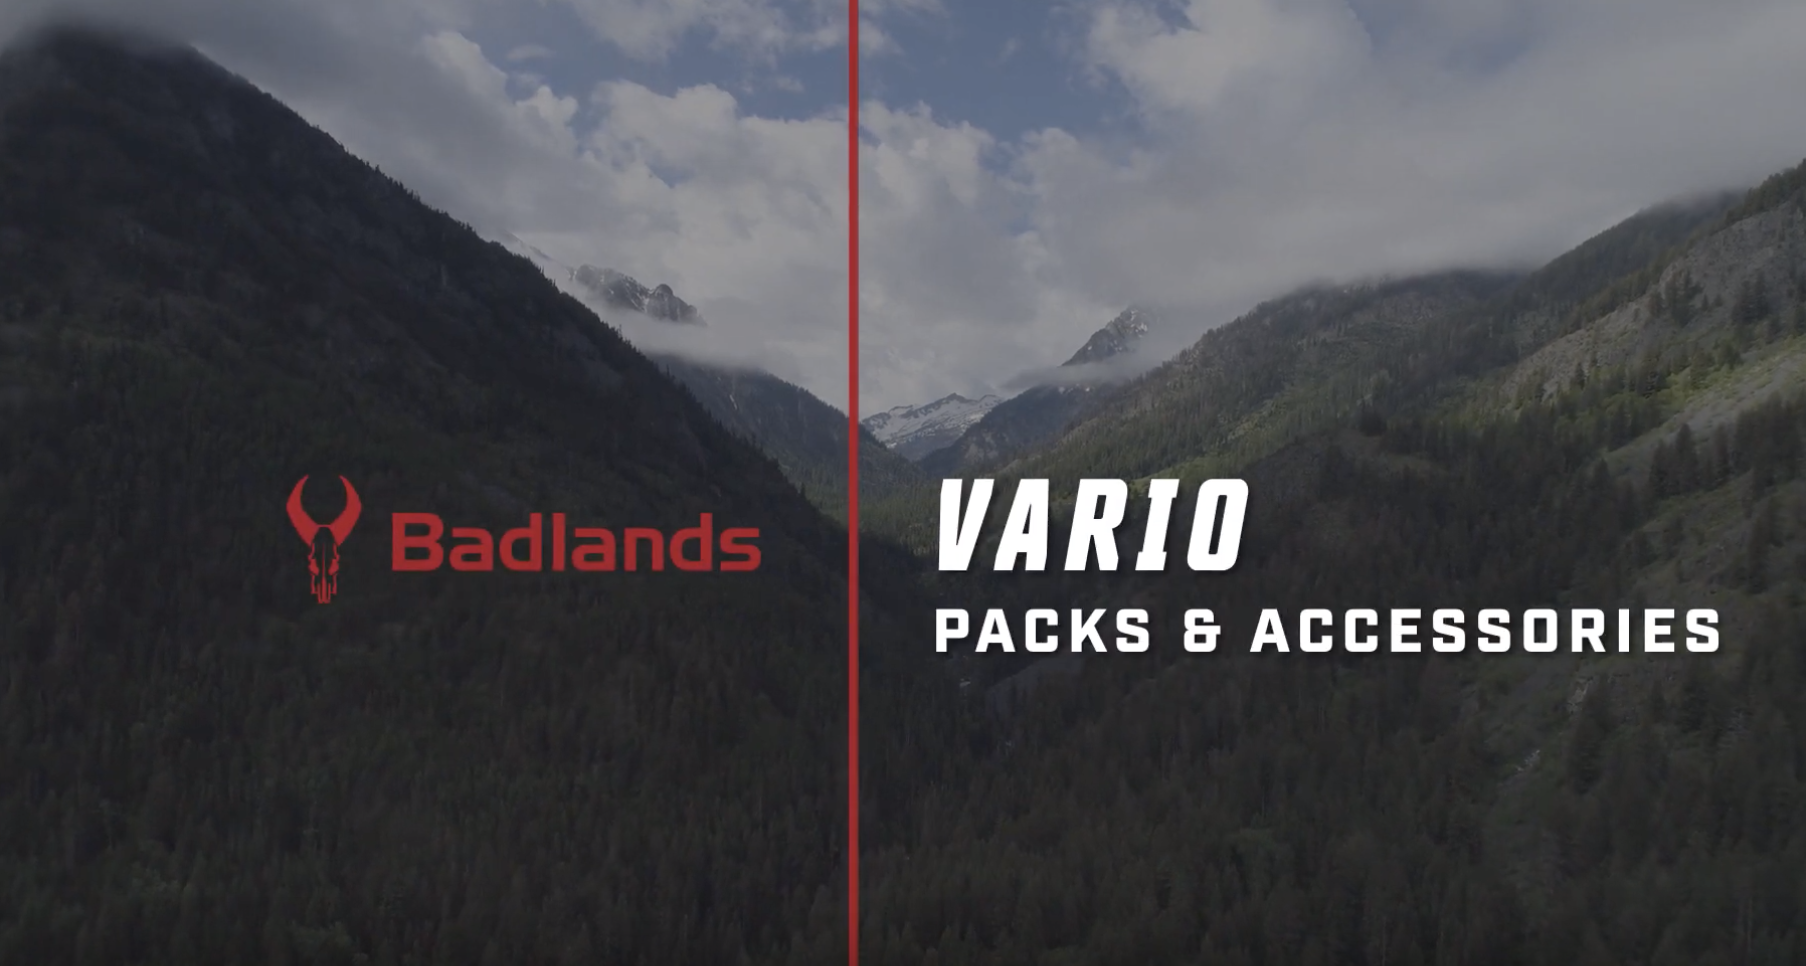 Learn more about Vario Accessories